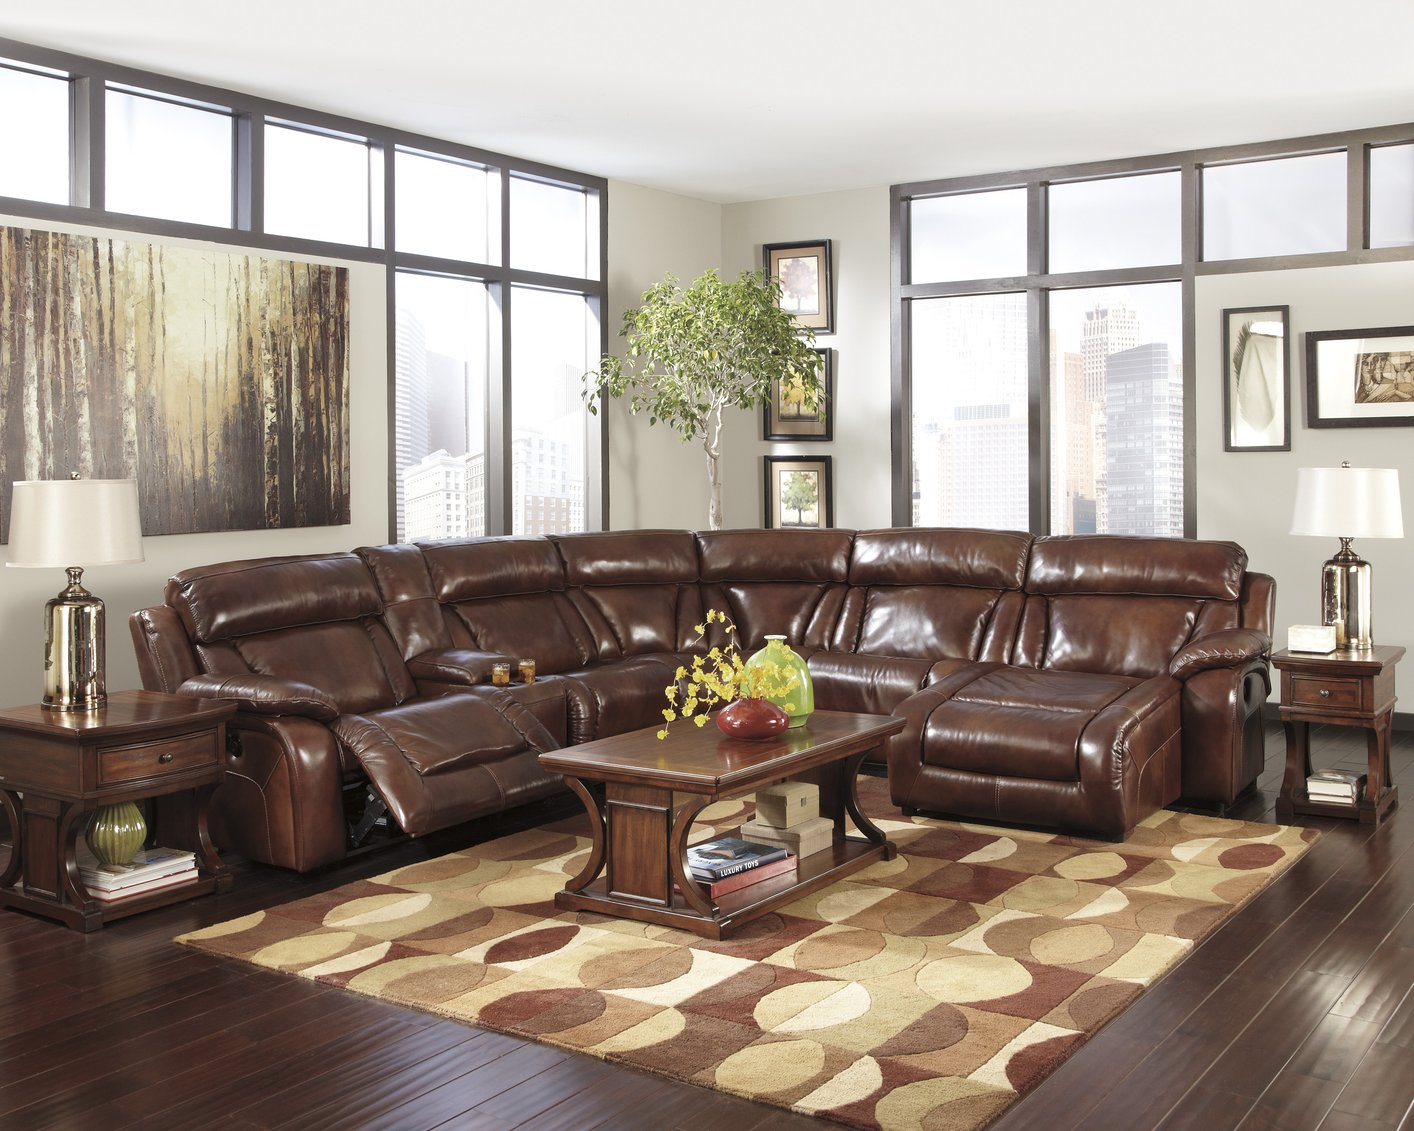 Sectional Sofa Clearance The Best Way To Get High Quality Sofa In - End table for sectional sofa